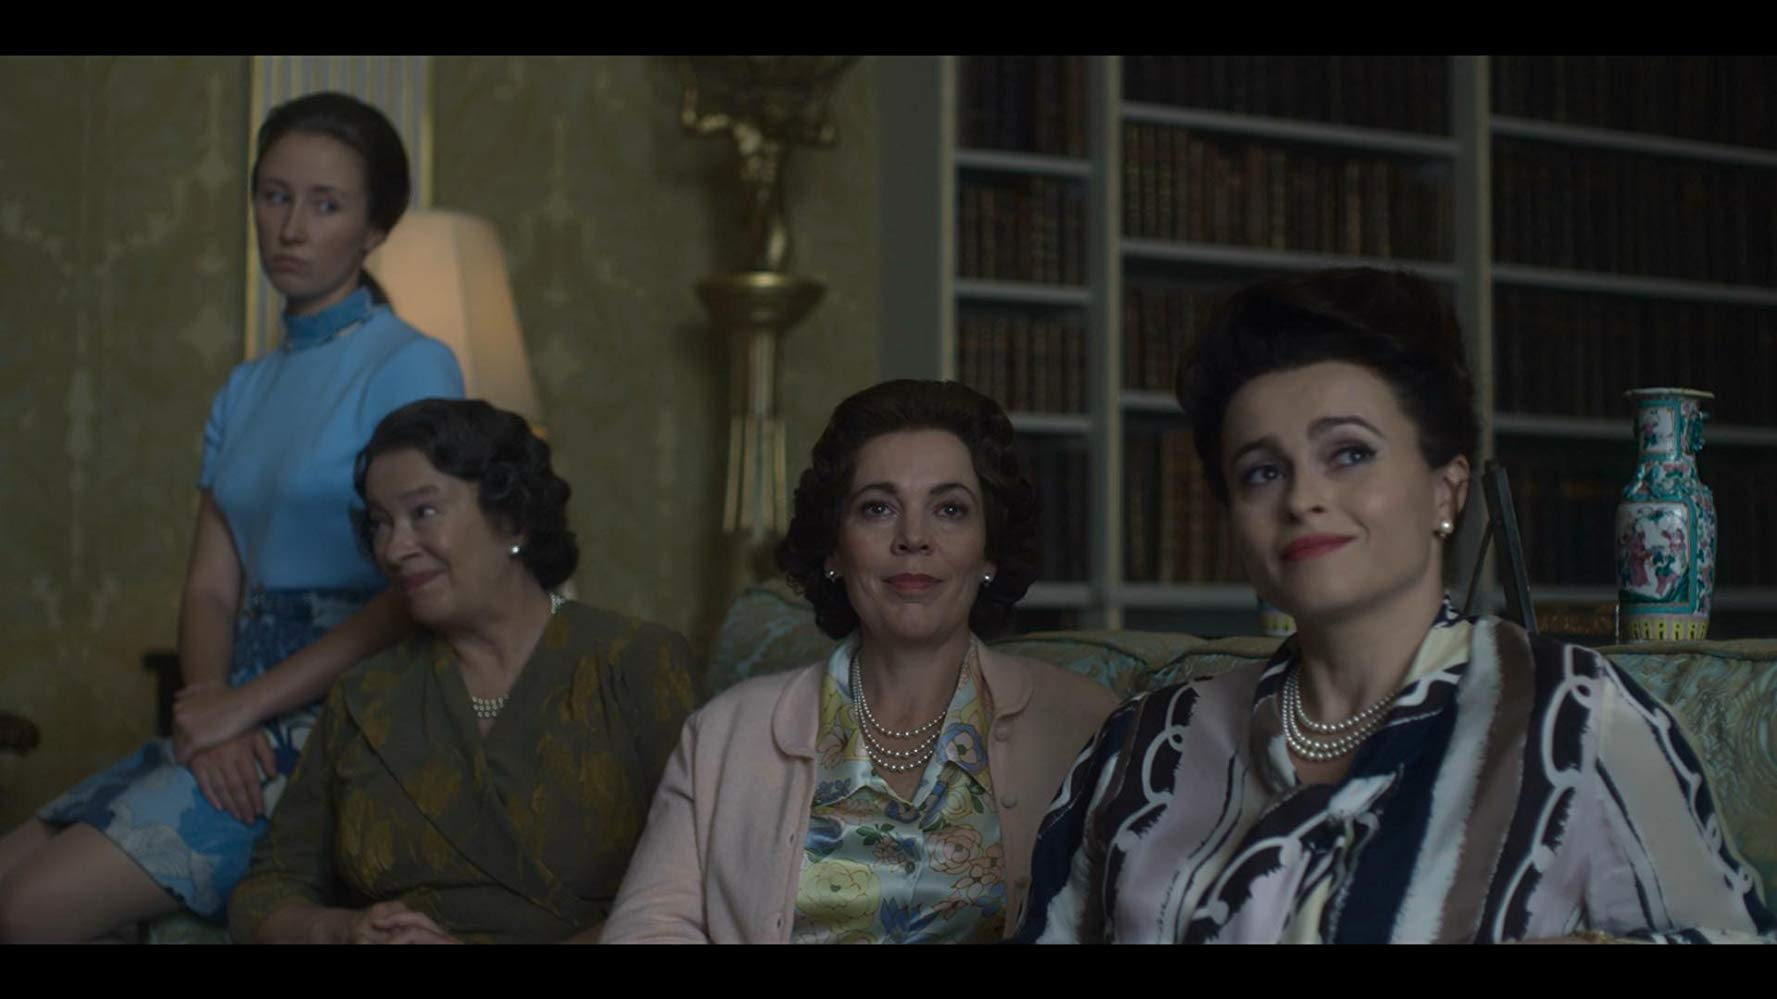 Von links nach rechts: Erin Doherty als Princess Anne, Marion Bailey als The Queen Mother, Olivia Colman als Queen Elizabeth II und Helena Bonham Carter als Princess Margaret in The Crown.